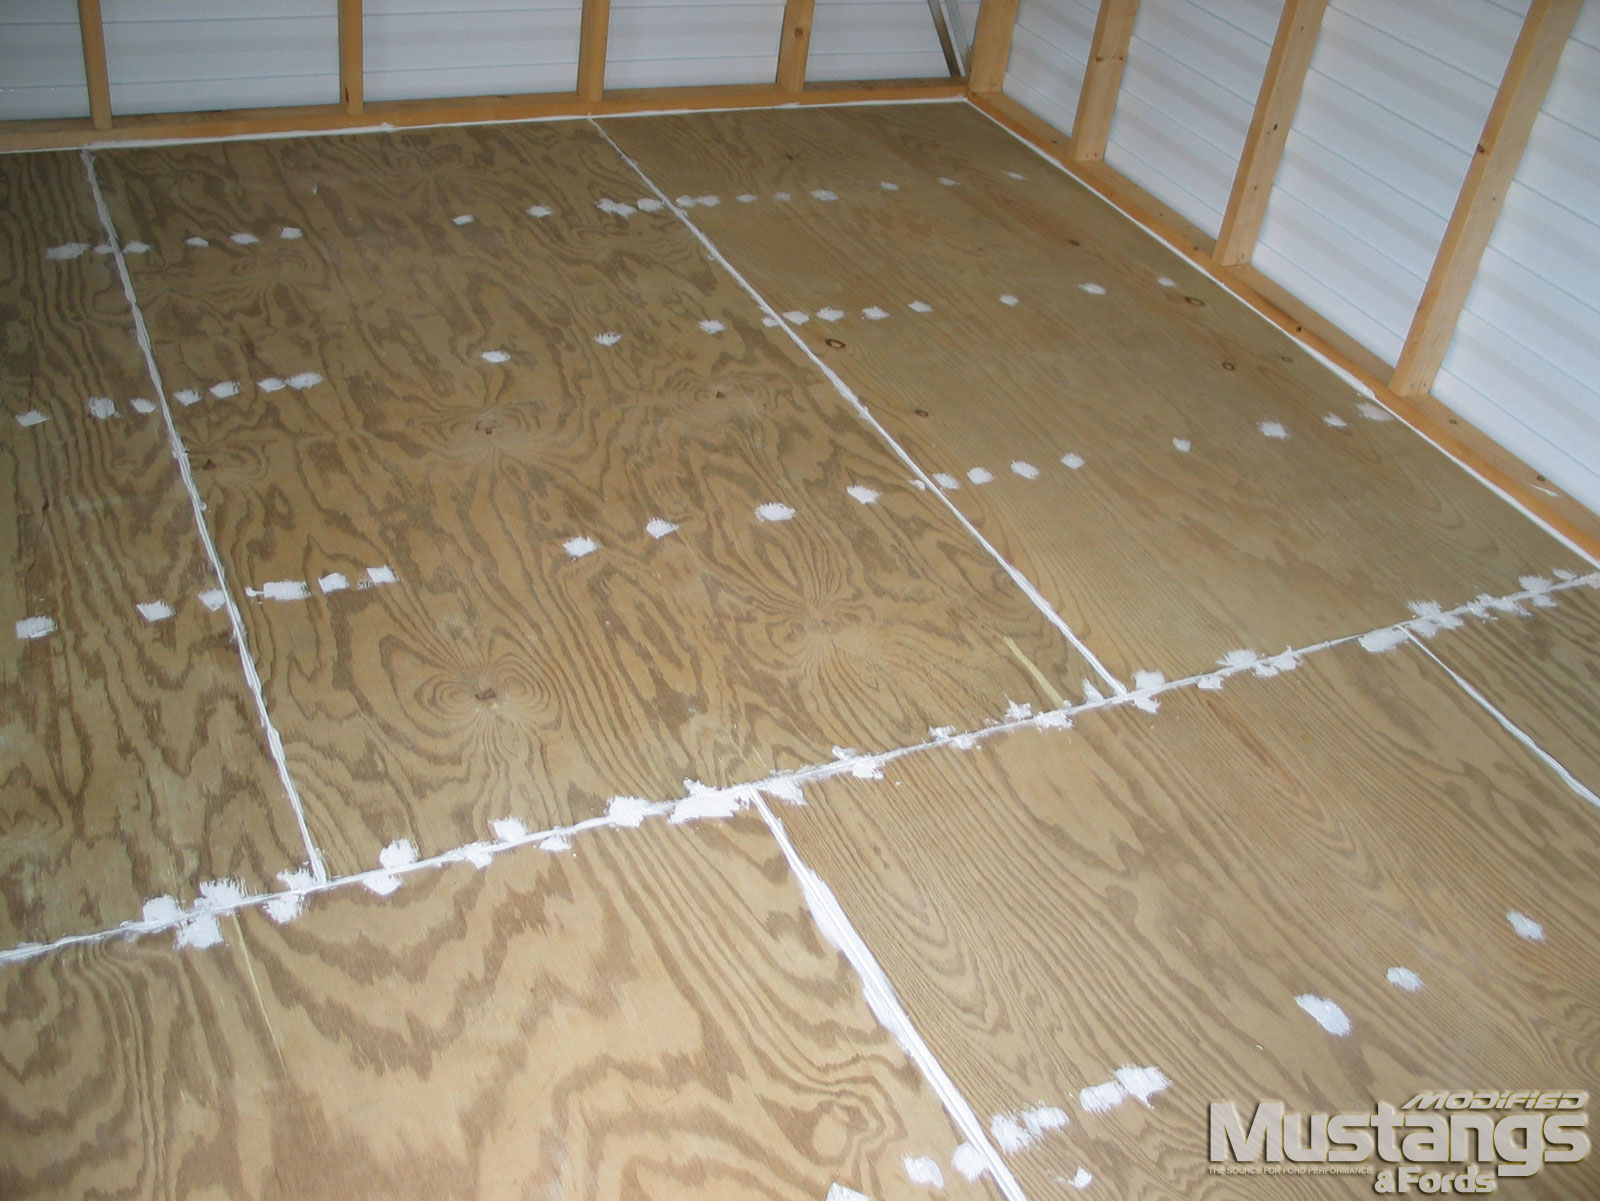 Mdmp 110916 Rock Solid Floors Garage Coat Install 05